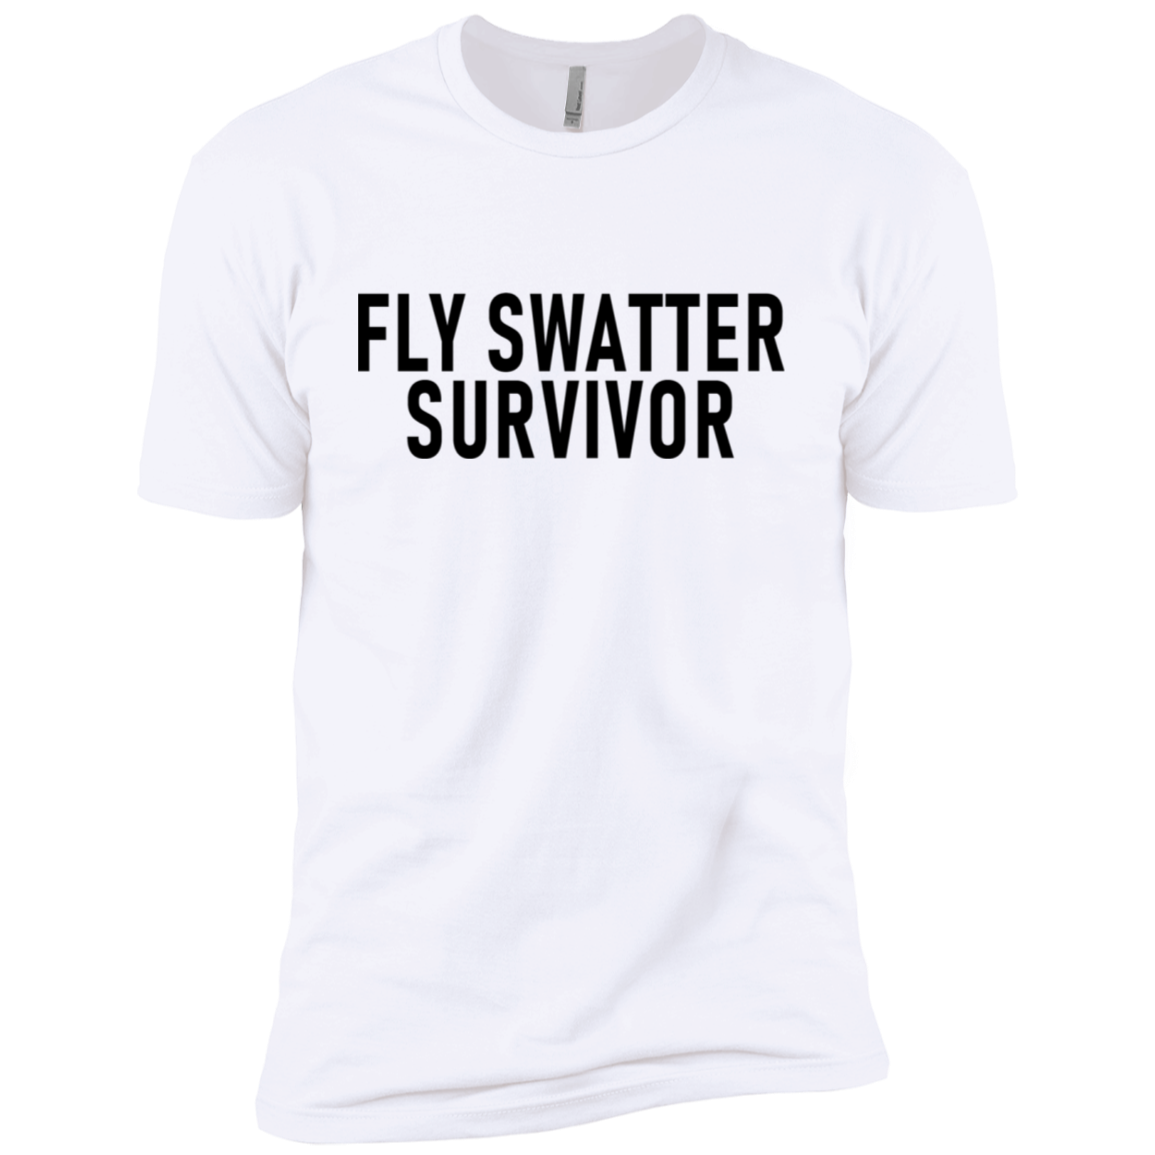 Fly Swatter Survivor Men's Classic Tee